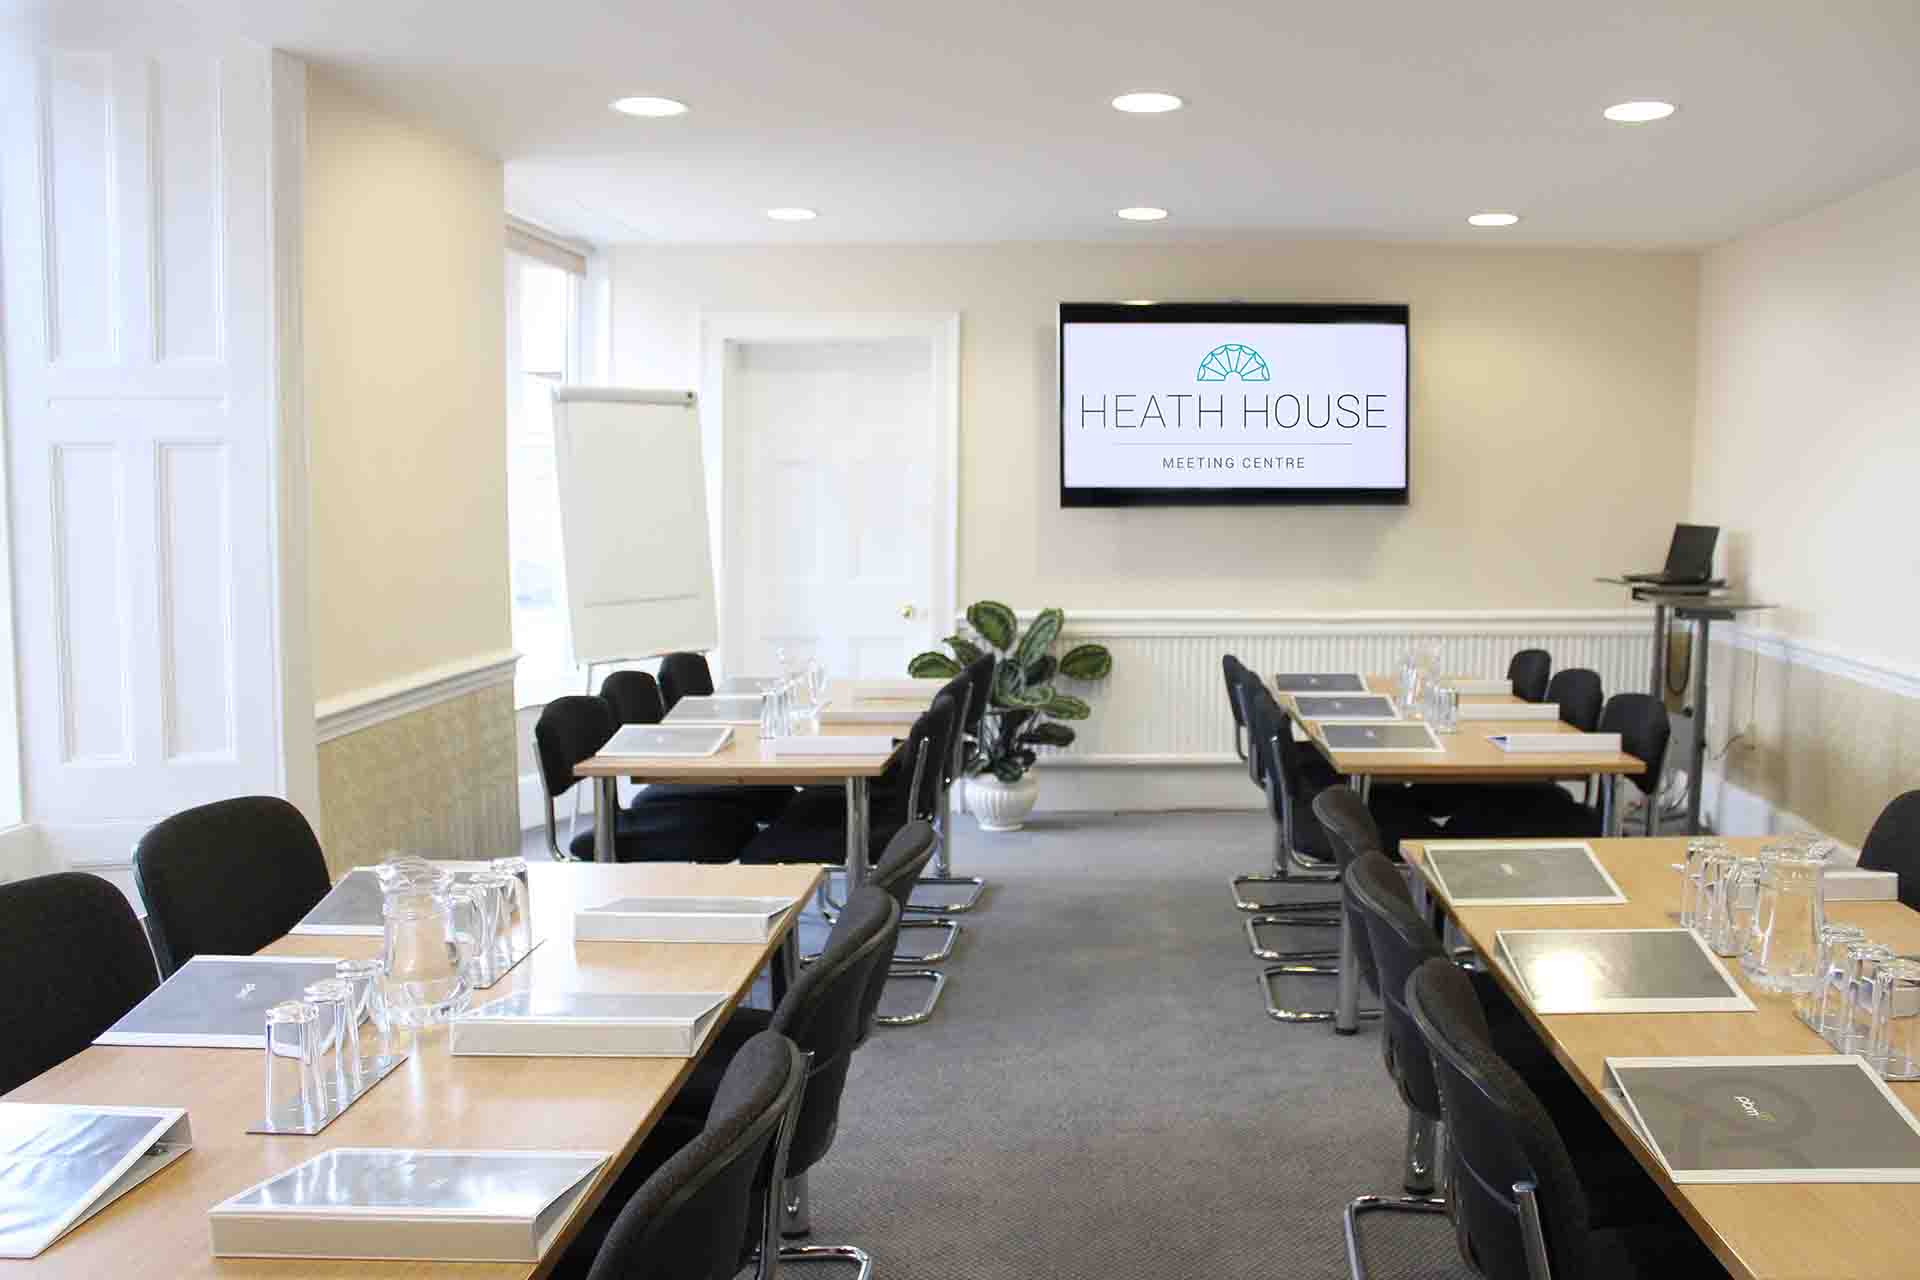 Bromley meeting room - training venue - Heath House Conference Centre, Uttoxeter, Staffordshire